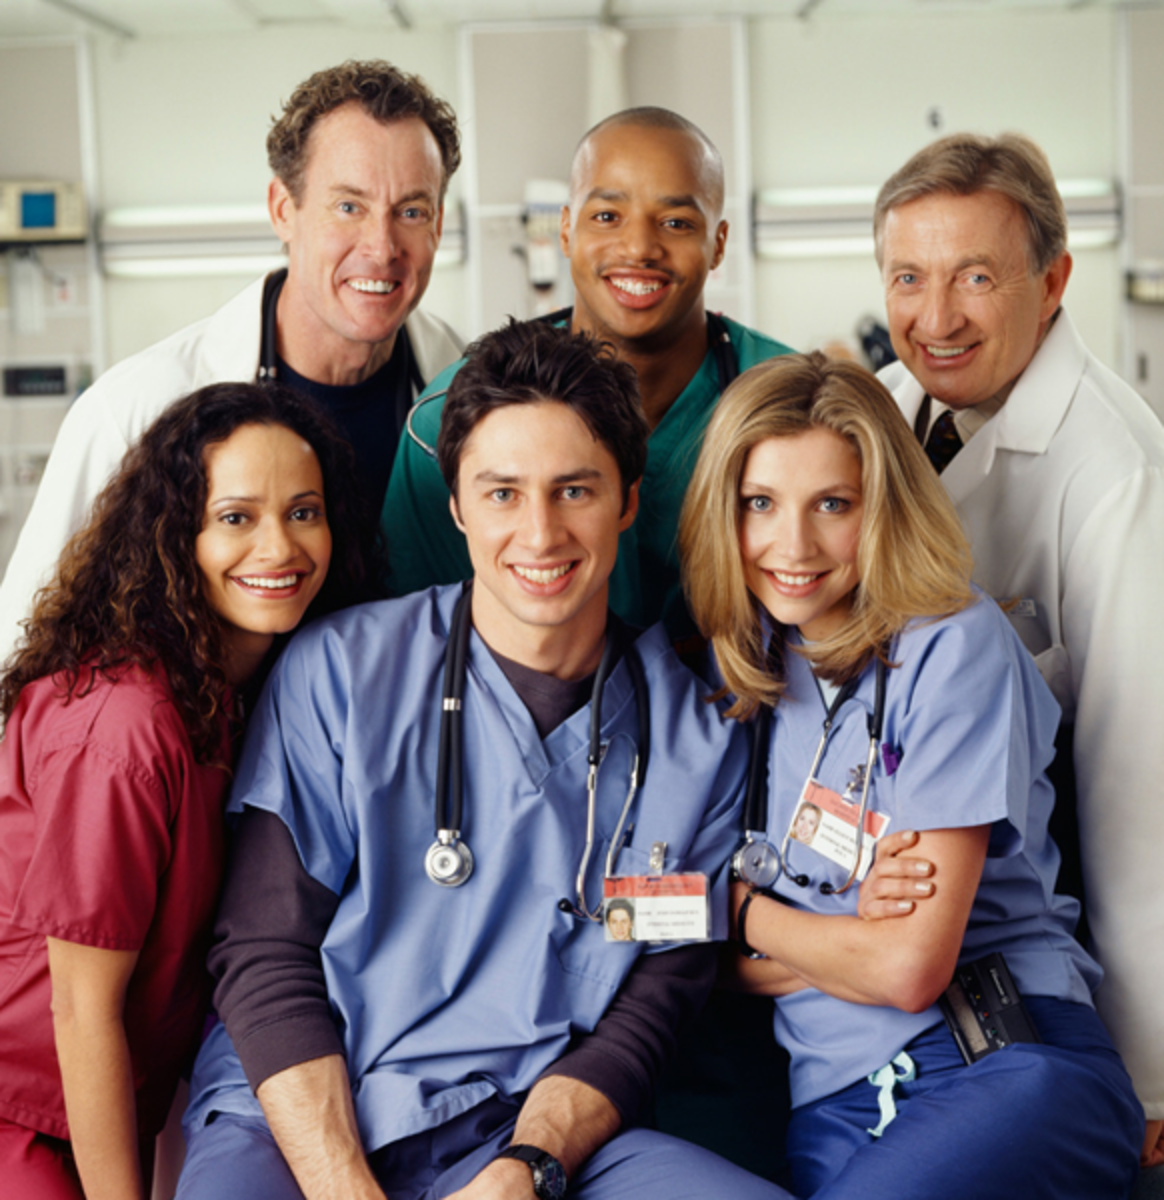 Where Is the Scrubs Cast at Now?